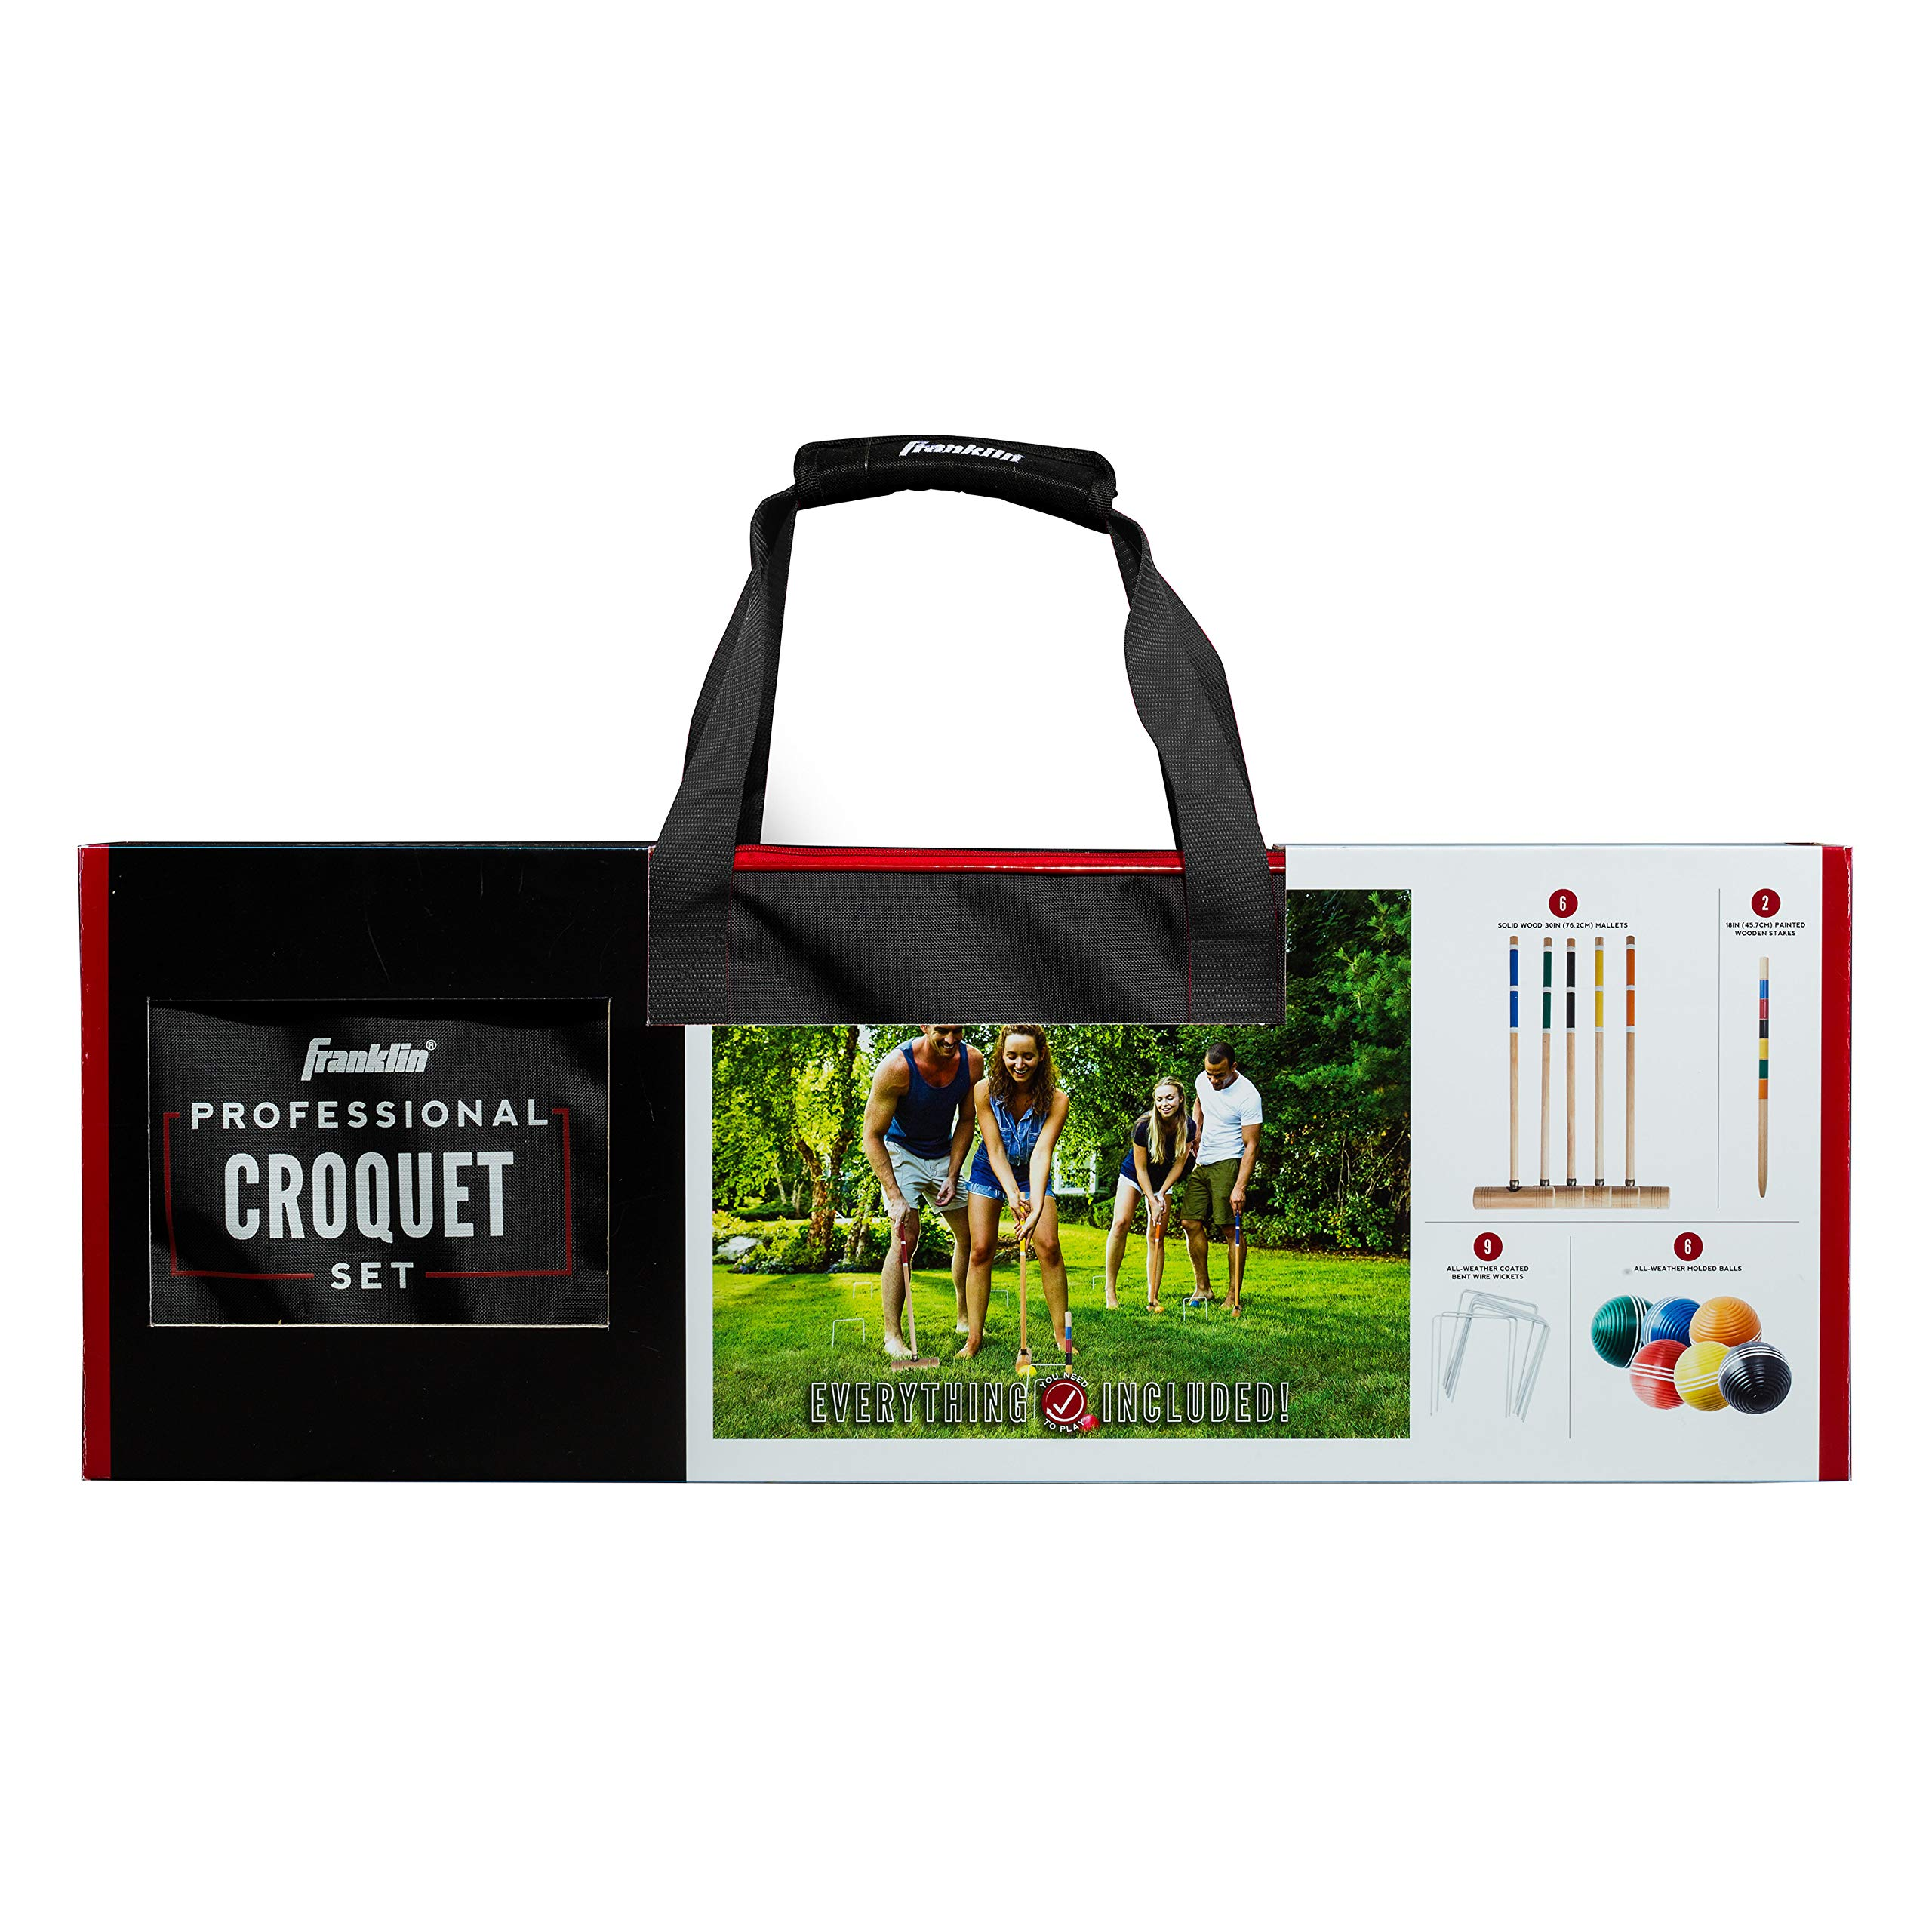 Franklin Sports Croquet Set - Up to 6 Players - Professional Quality Croquet Set for Lawn Games - Complete Croquet Set with Carrying Case - Includes Wooden Mallets, Durable Balls, Weatherproof Wickets by Franklin Sports (Image #5)